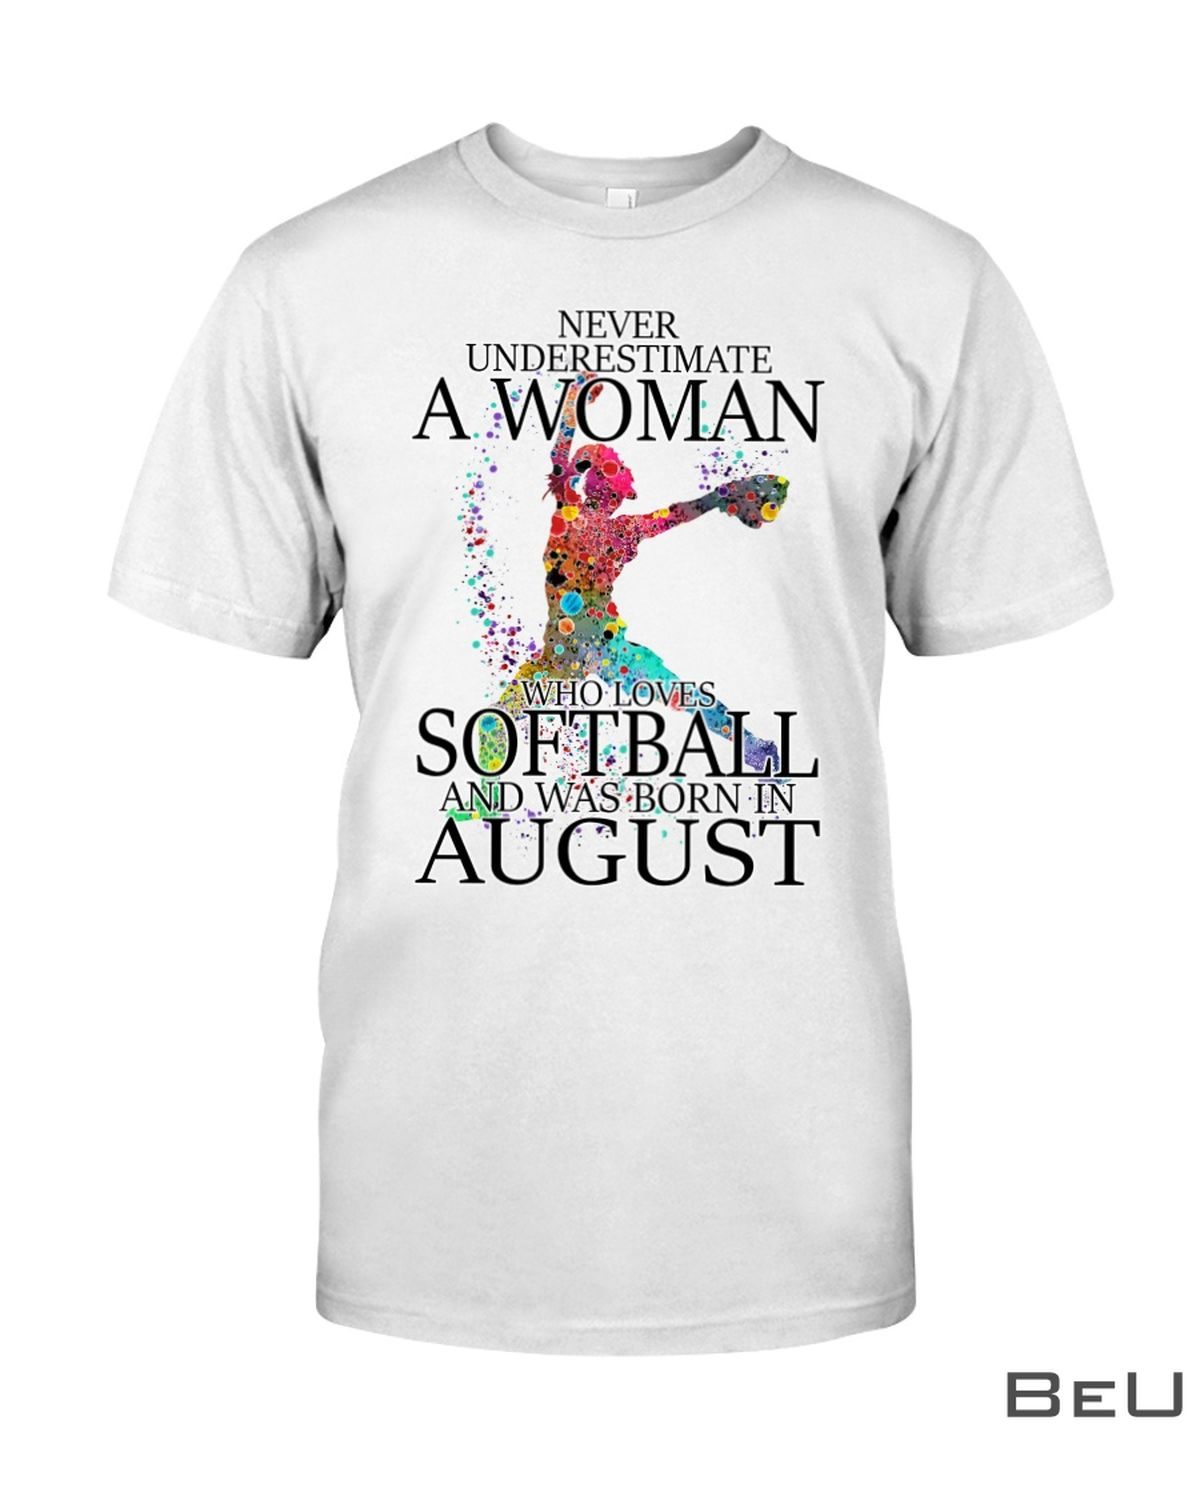 Never Underestimate A Woman Who Loves Softball And Was Born In August Shirt, hoodie, tank top